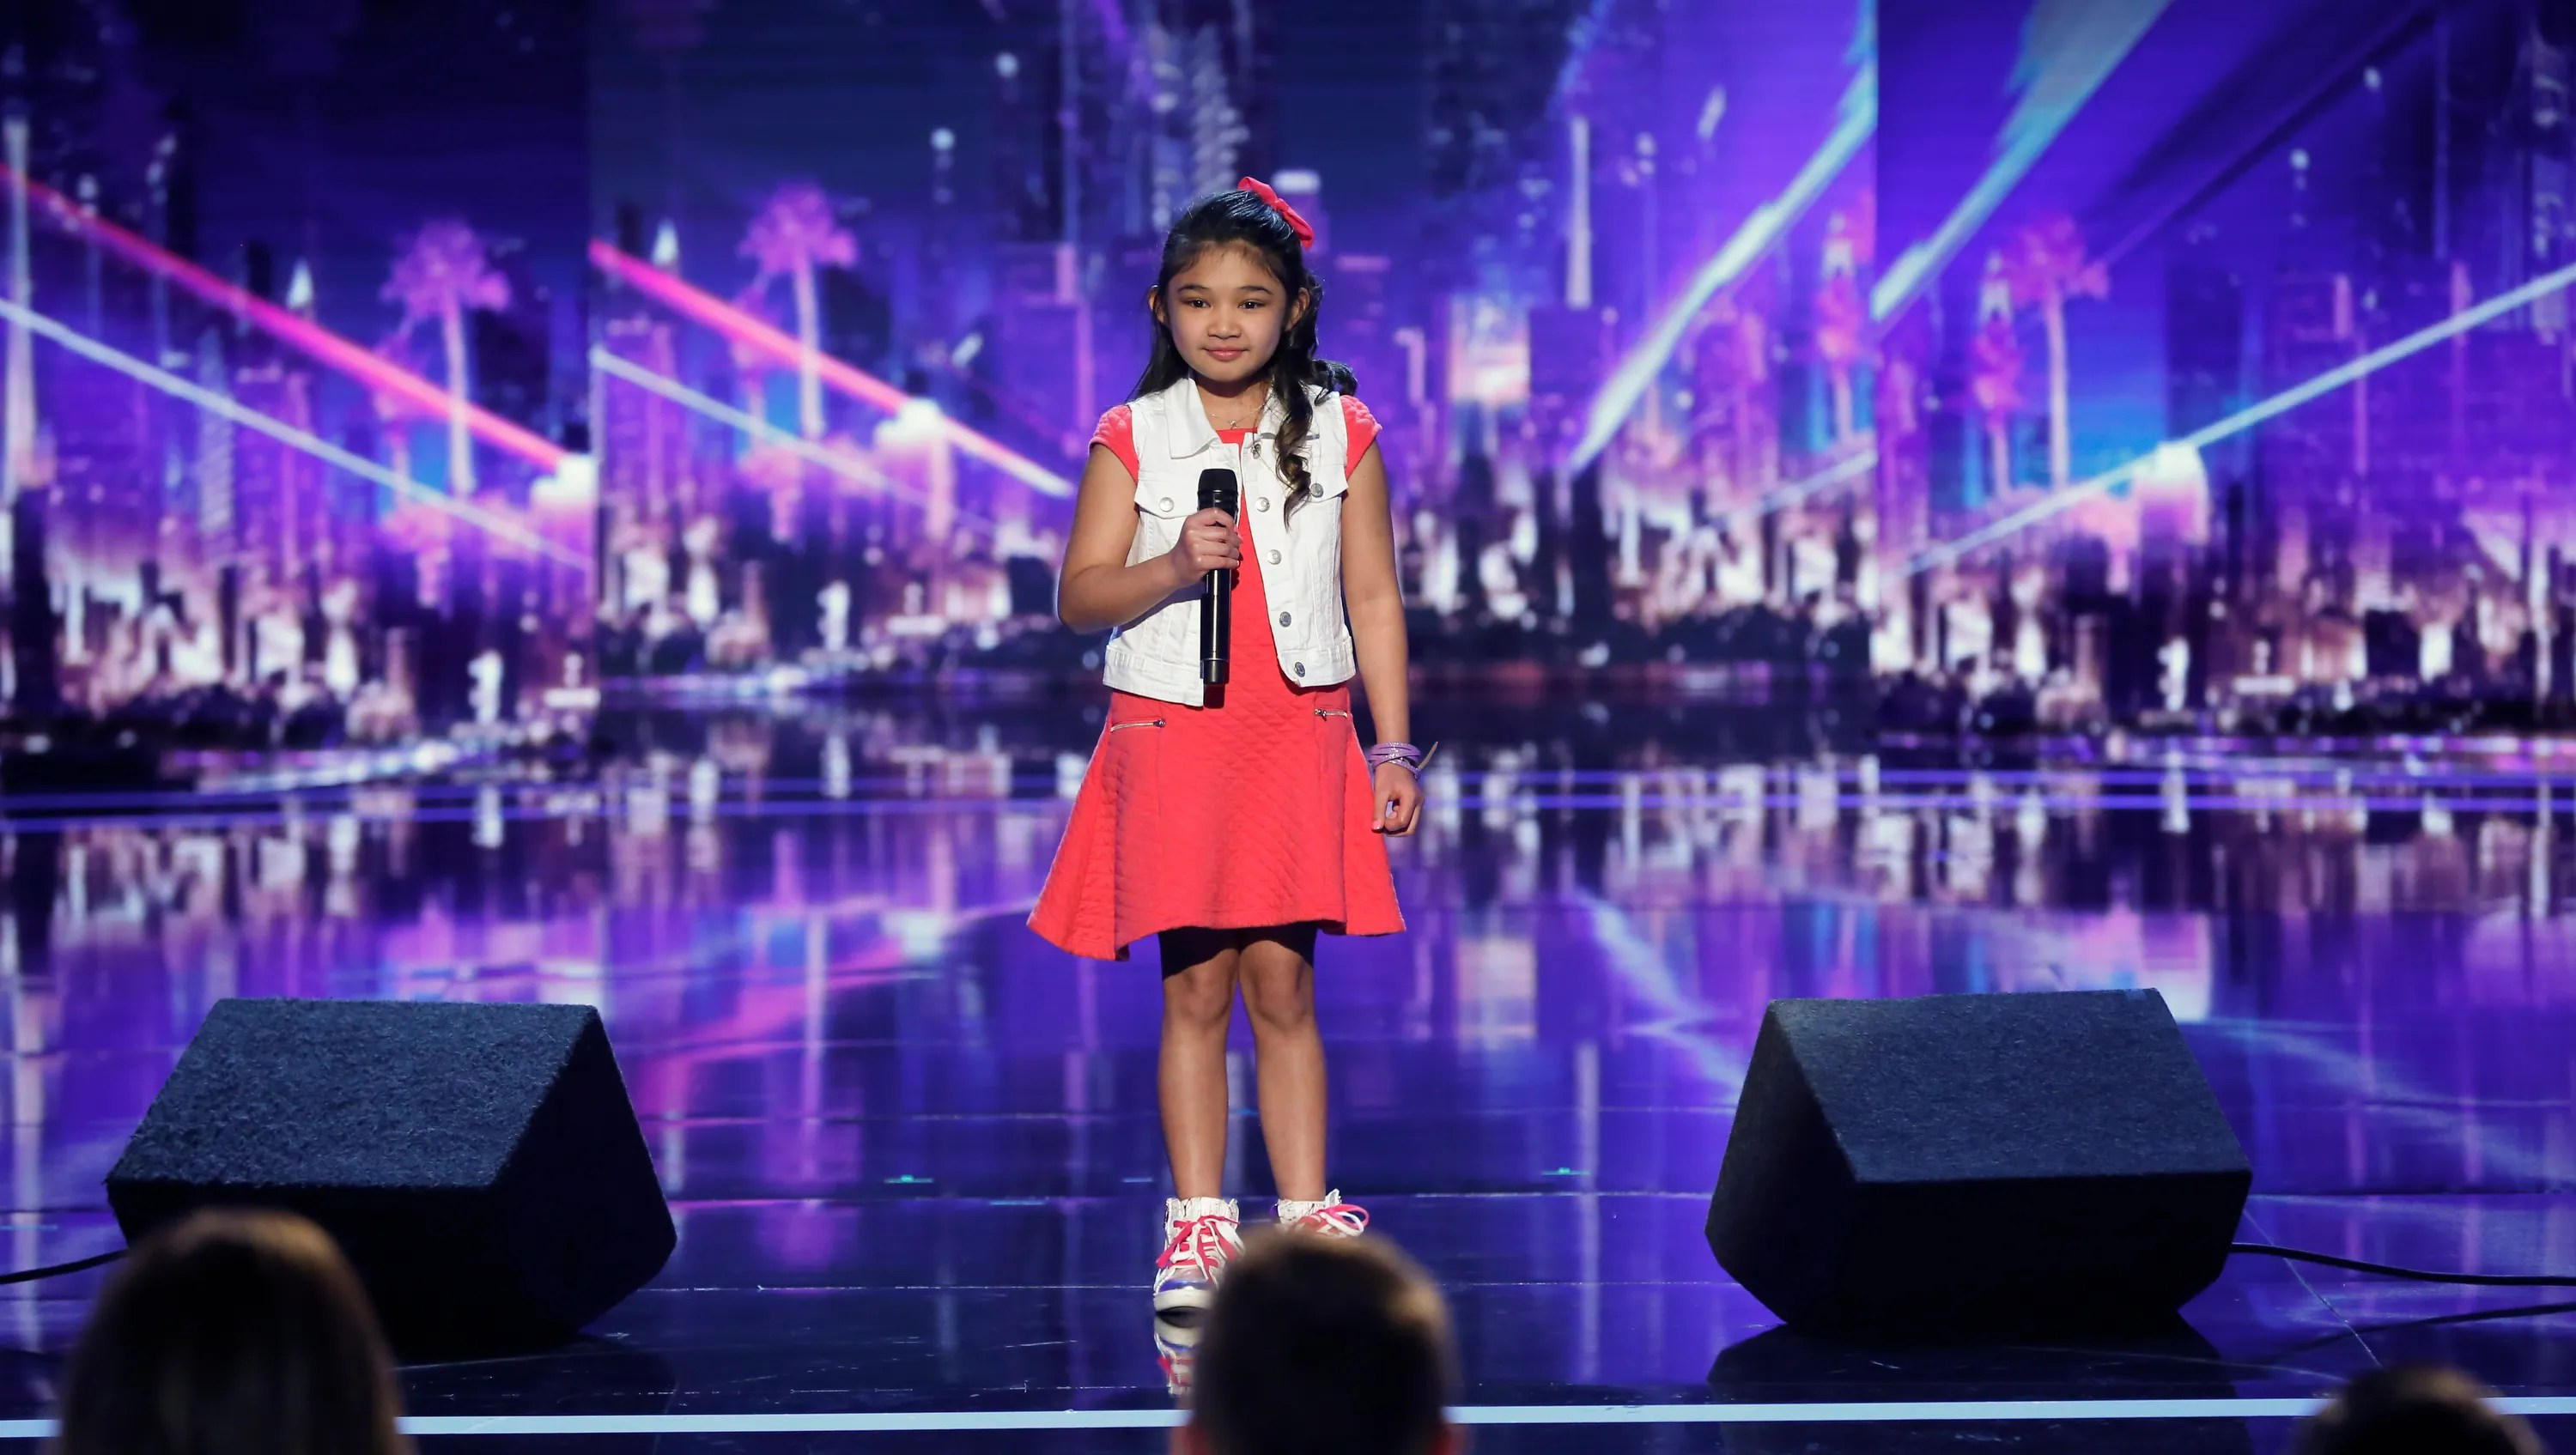 America S Got Talent 9 Year Old Wows Judges With Alicia